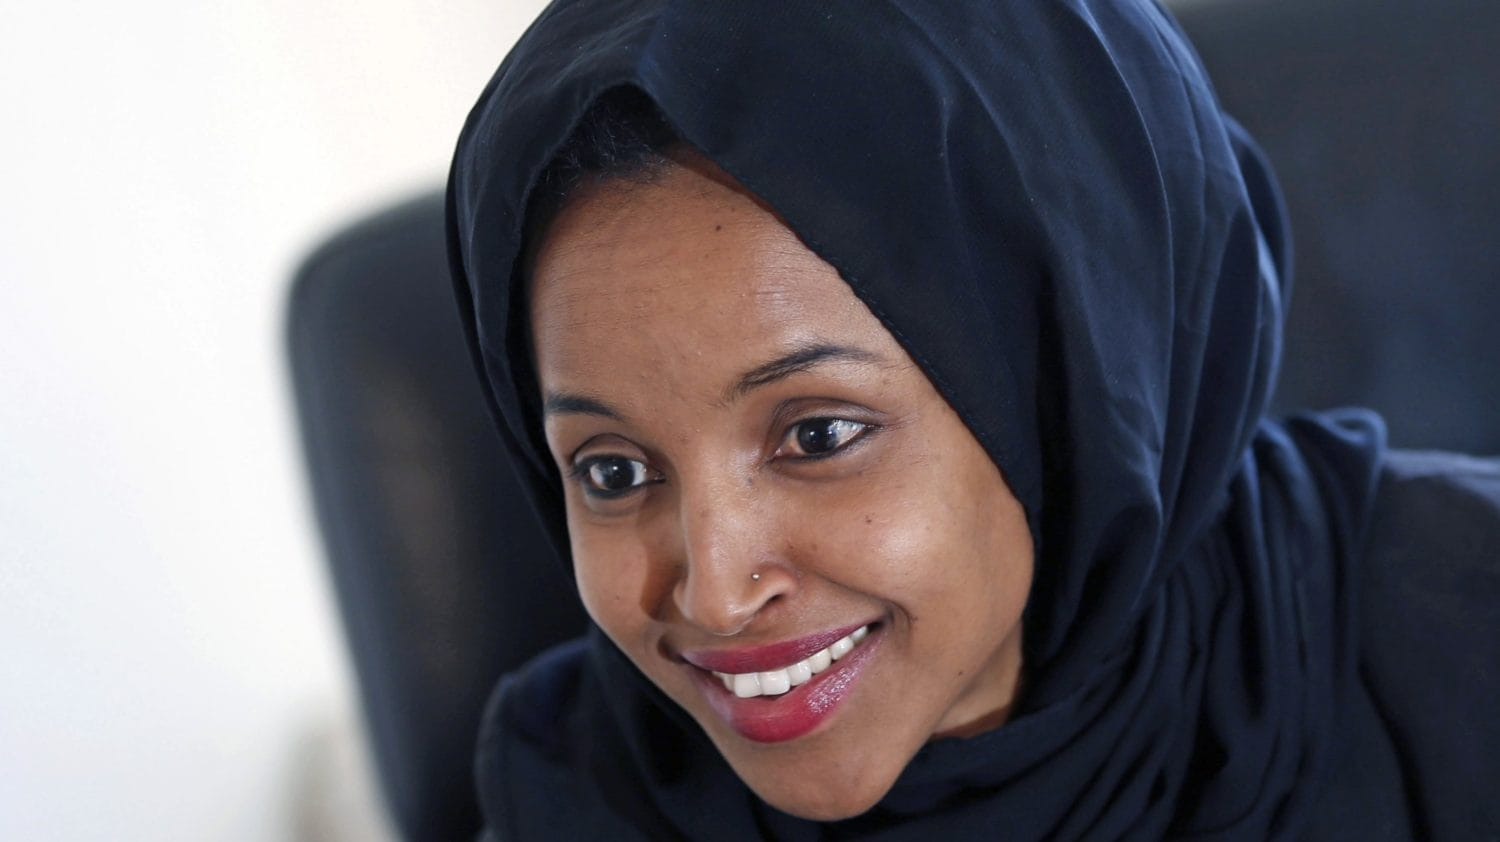 Rep. Ilhan Omar far outpaces Minnesota Congressional colleagues in fundraising